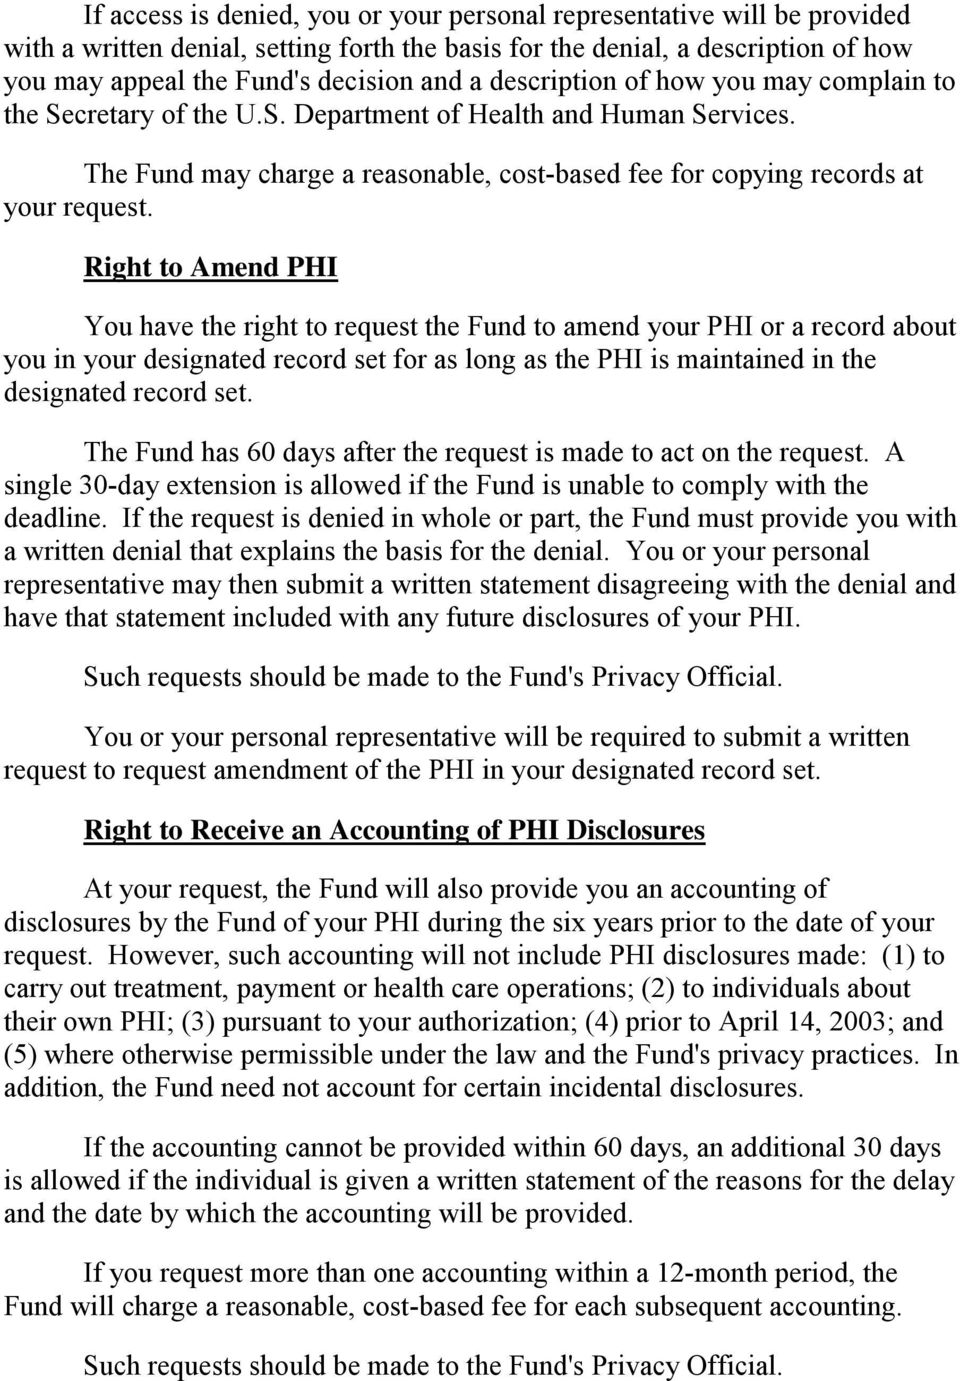 Right to Amend PHI You have the right to request the Fund to amend your PHI or a record about you in your designated record set for as long as the PHI is maintained in the designated record set.